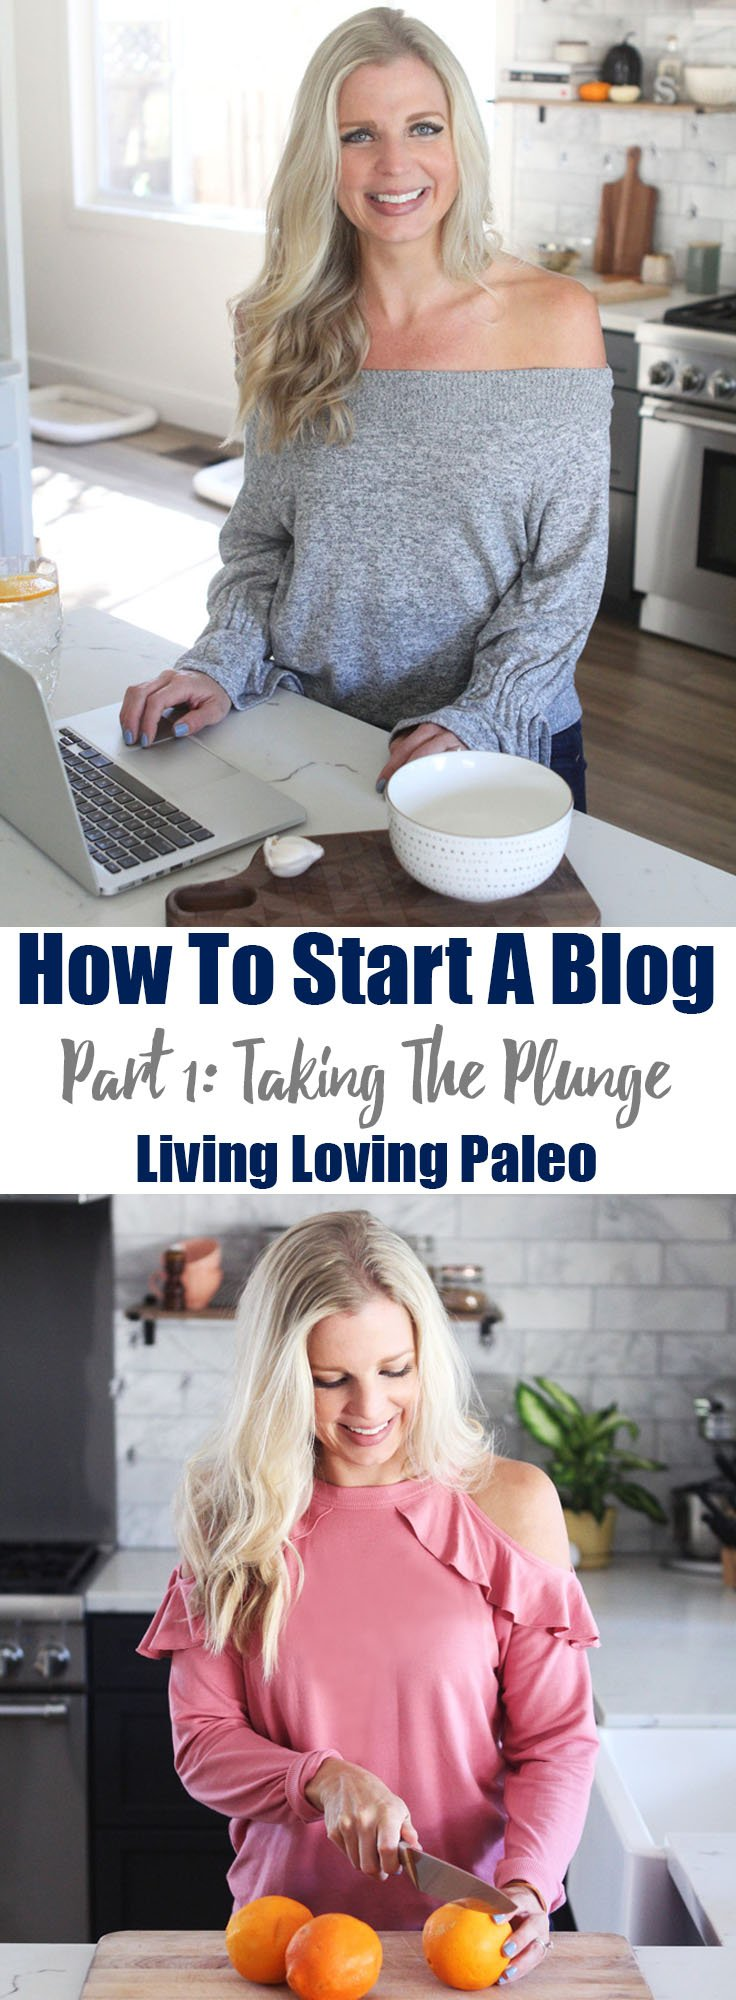 How To Start A Blog – Part 1: Taking The Plunge